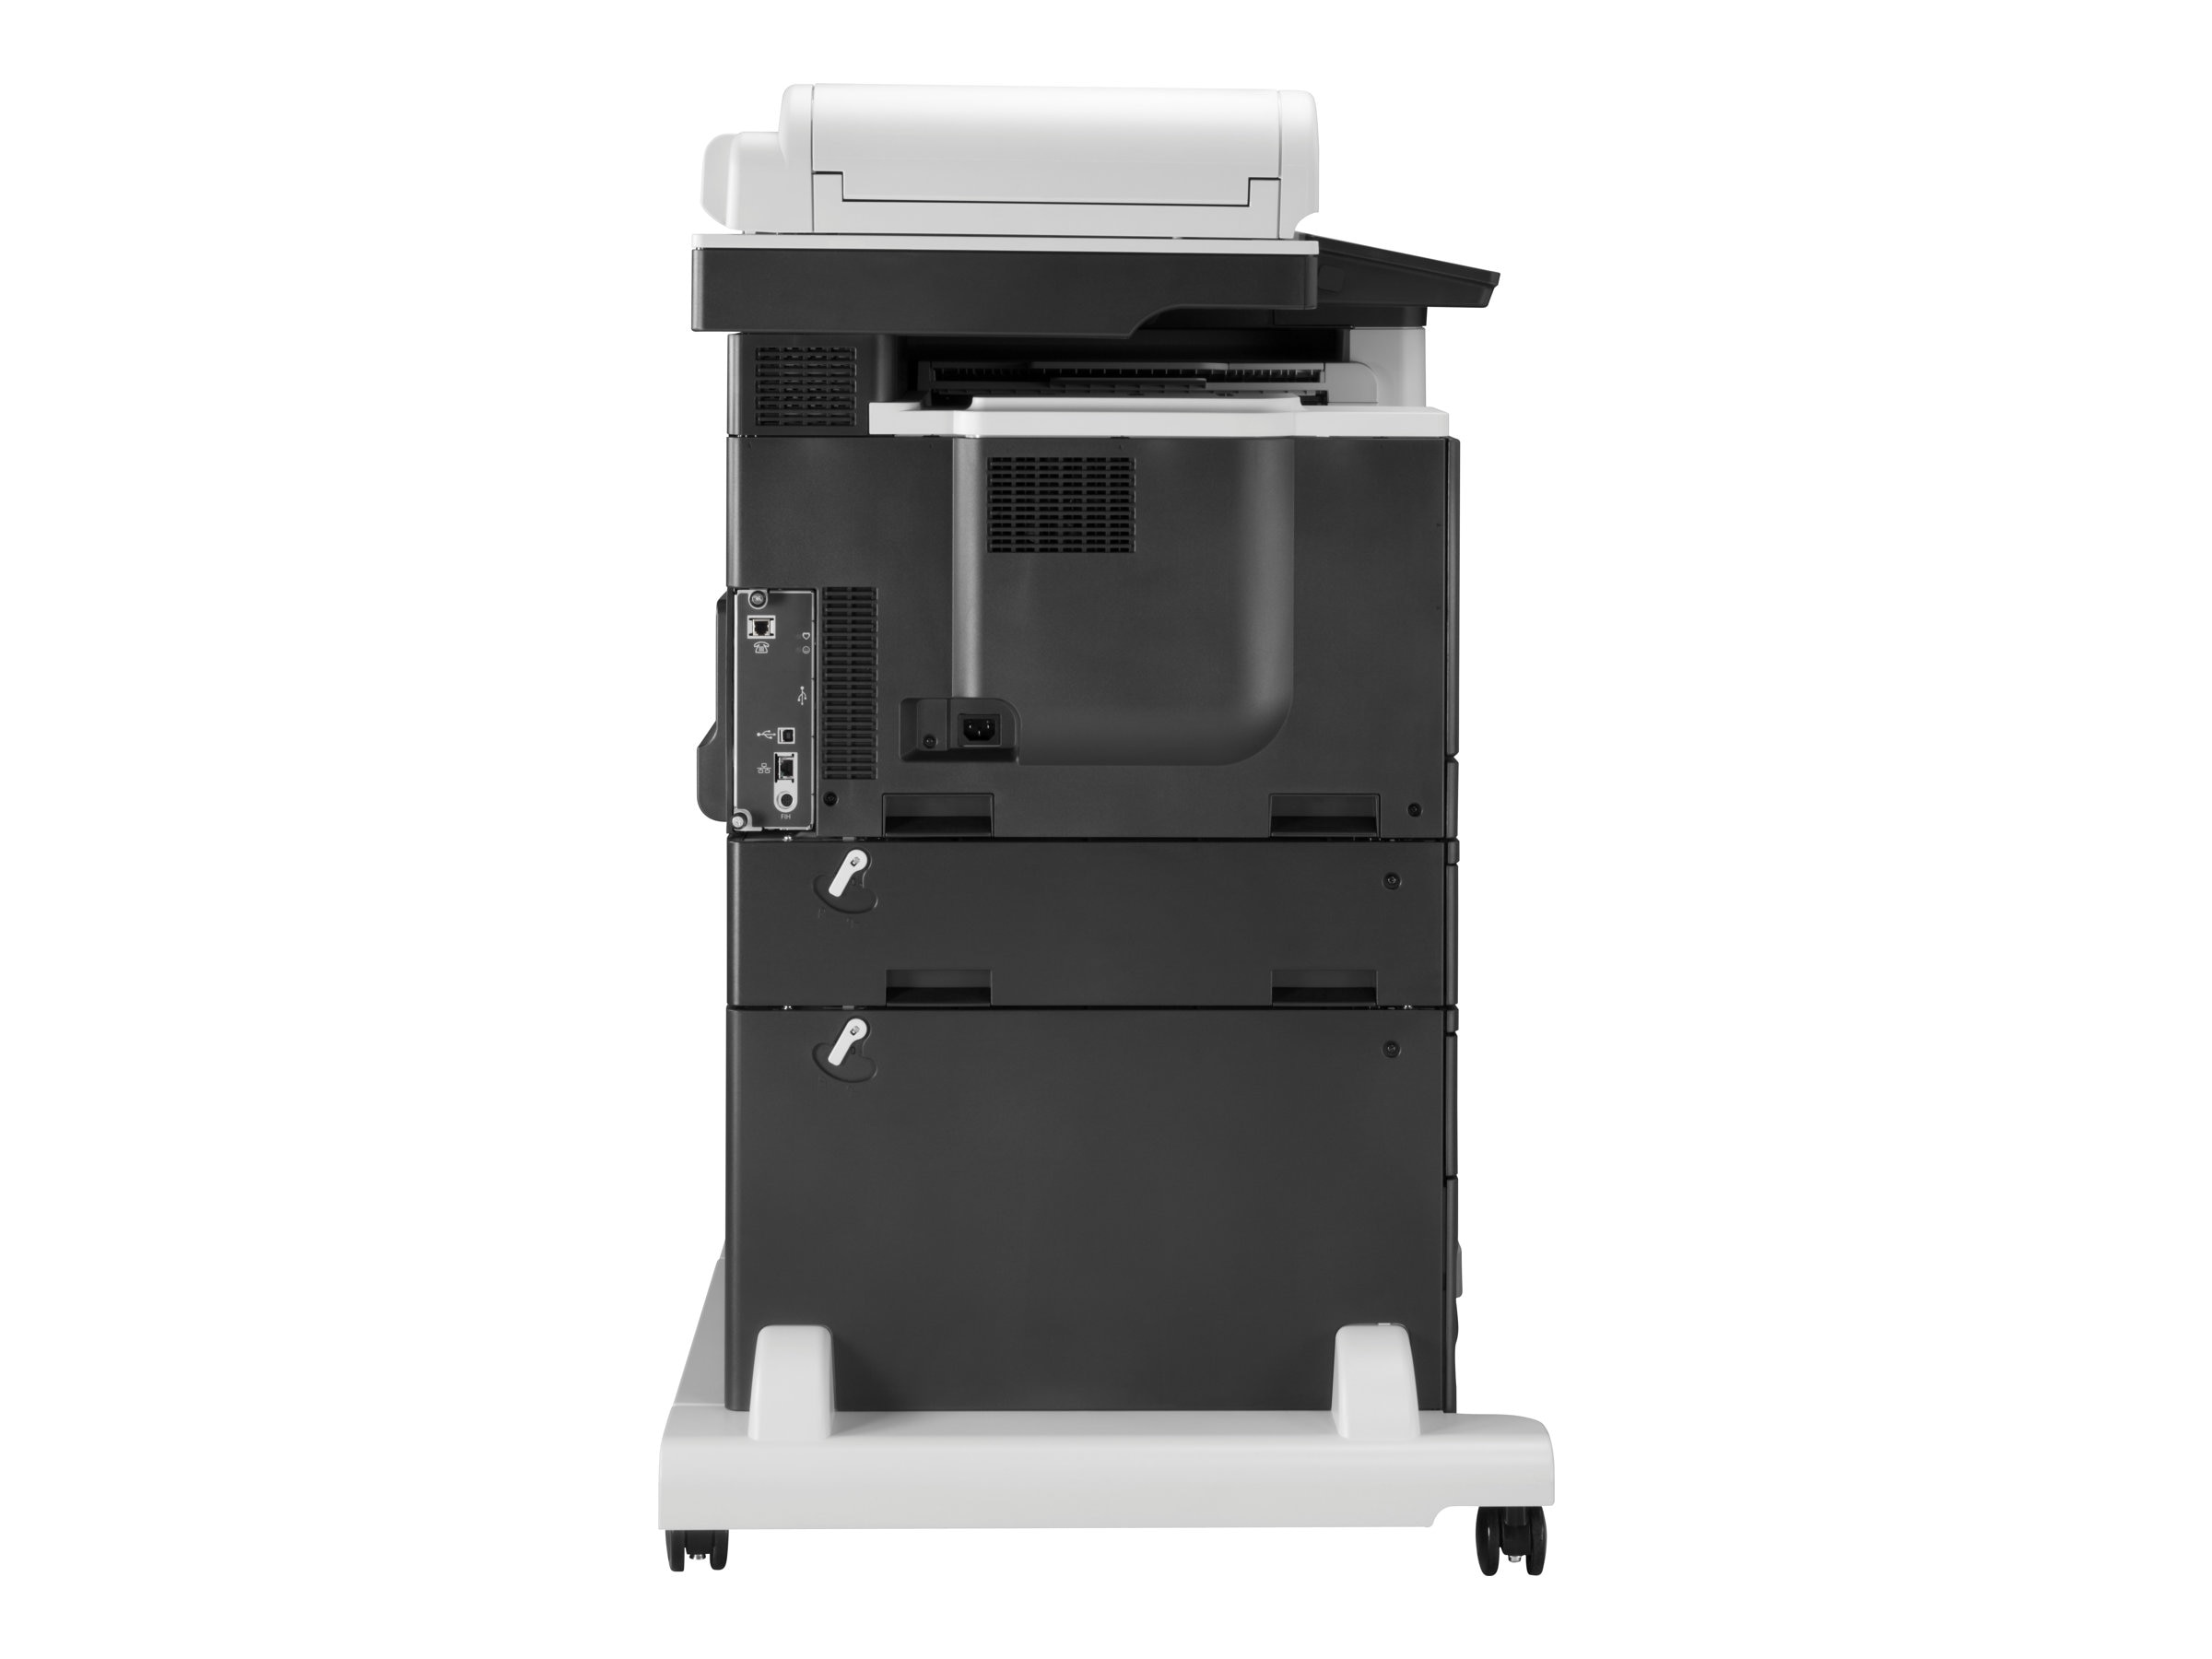 HP LaserJet Enterprise 700 color MFP M775f, CC523A#BGJ